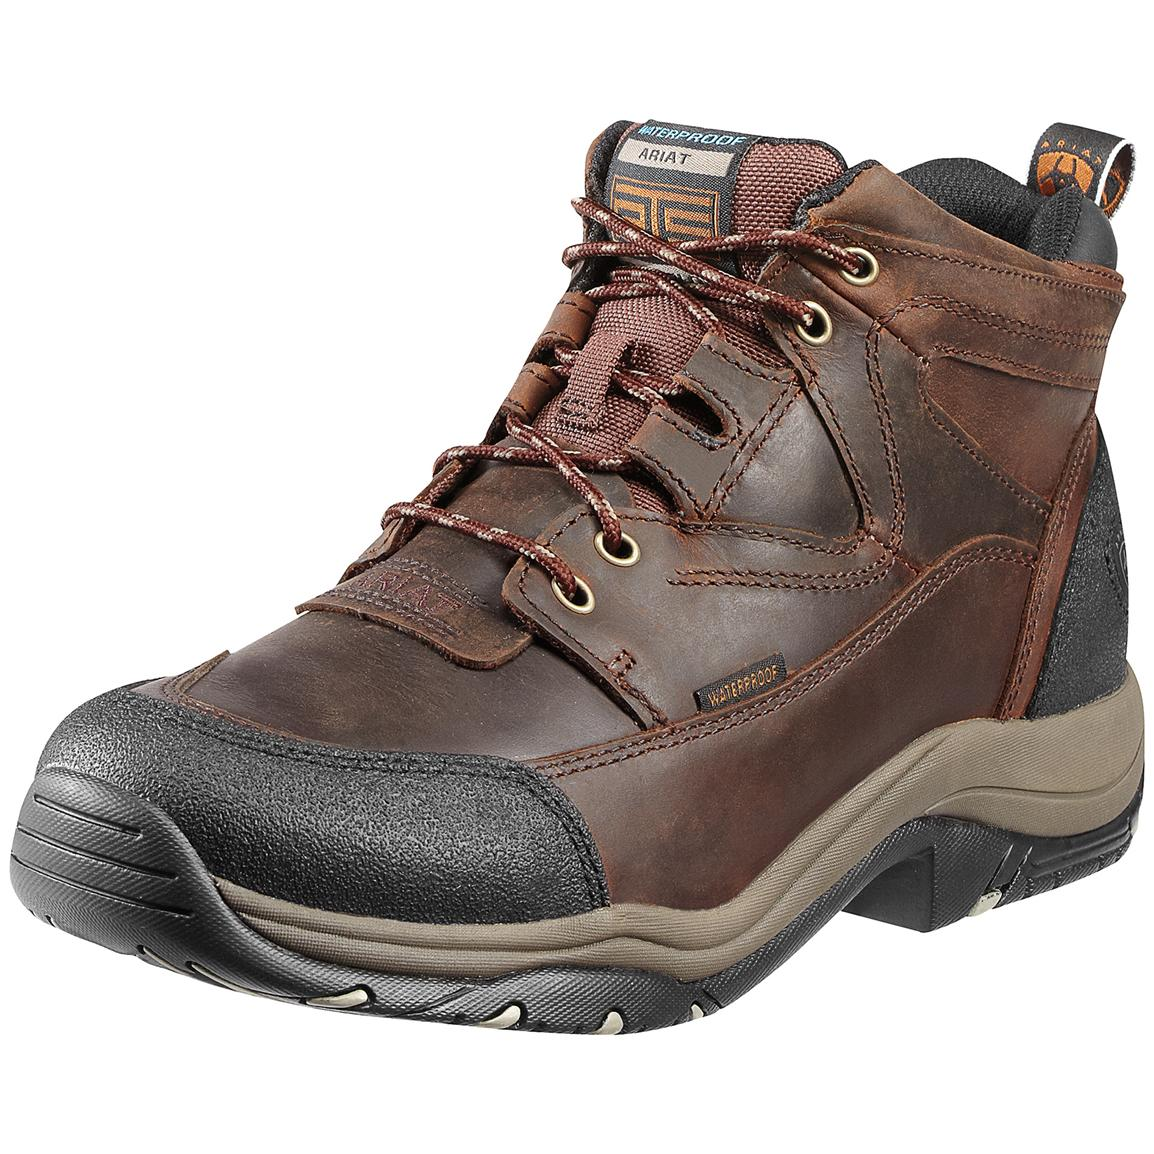 Ariat Hiking Boots VhzGT7ij